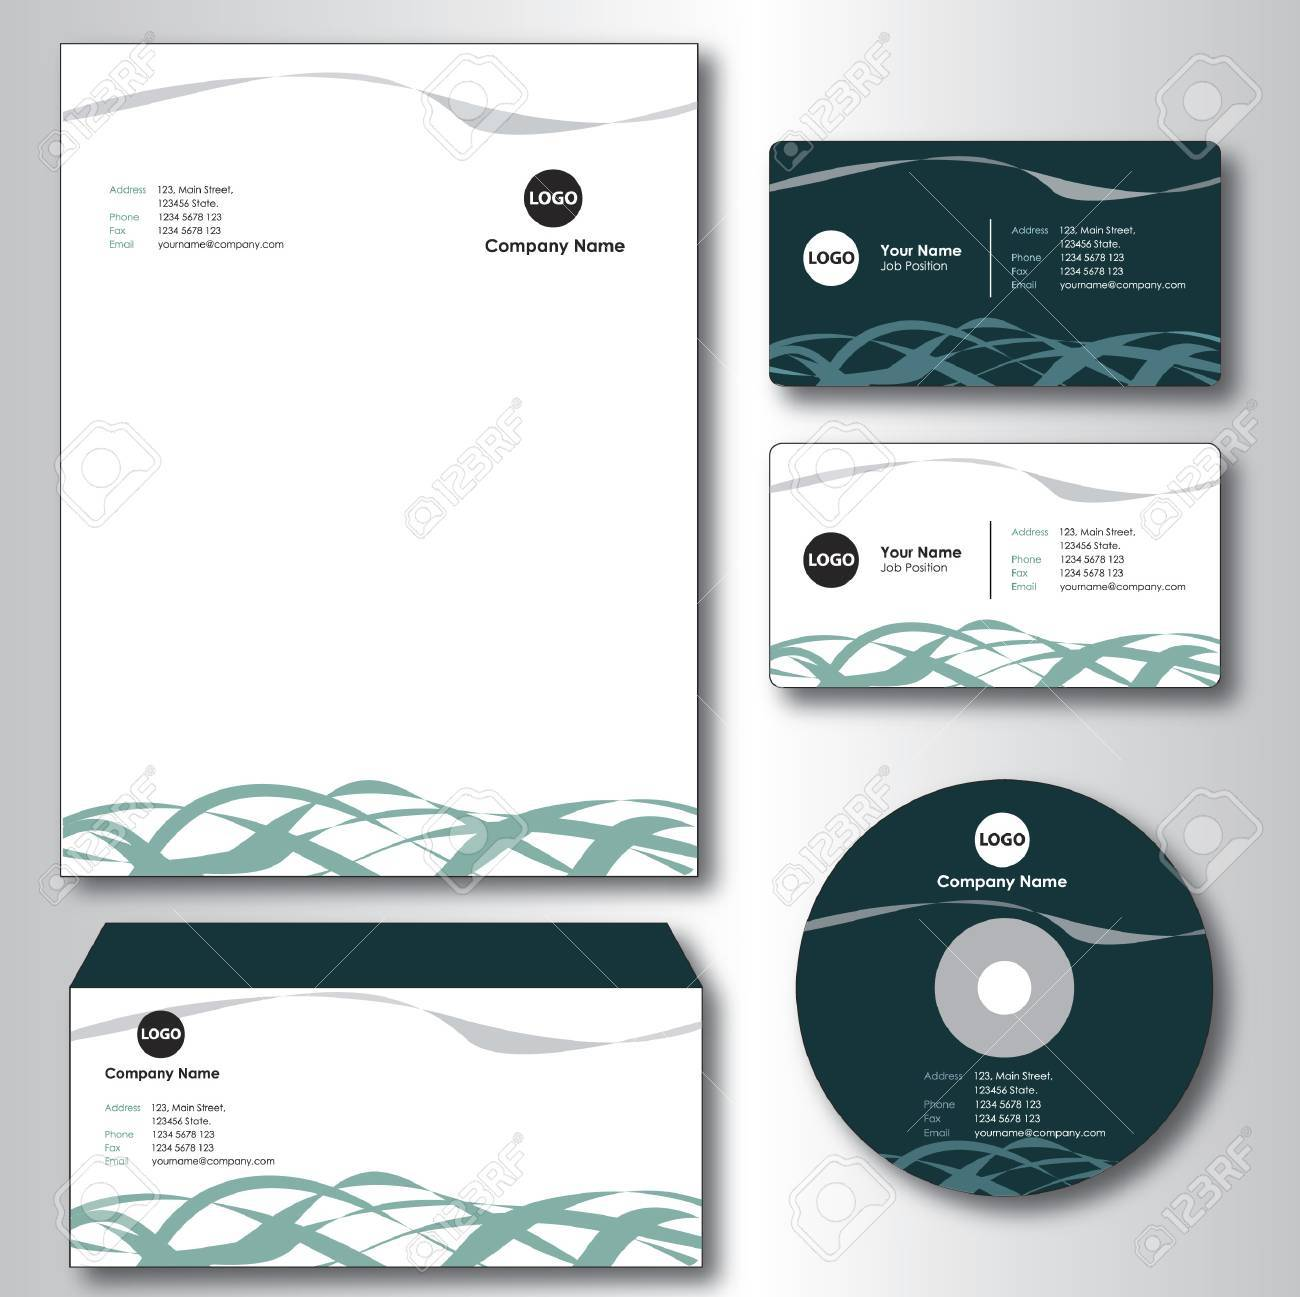 Company paper envelope business card and cd royalty free cliparts company paper envelope business card and cd stock vector 31523678 reheart Image collections